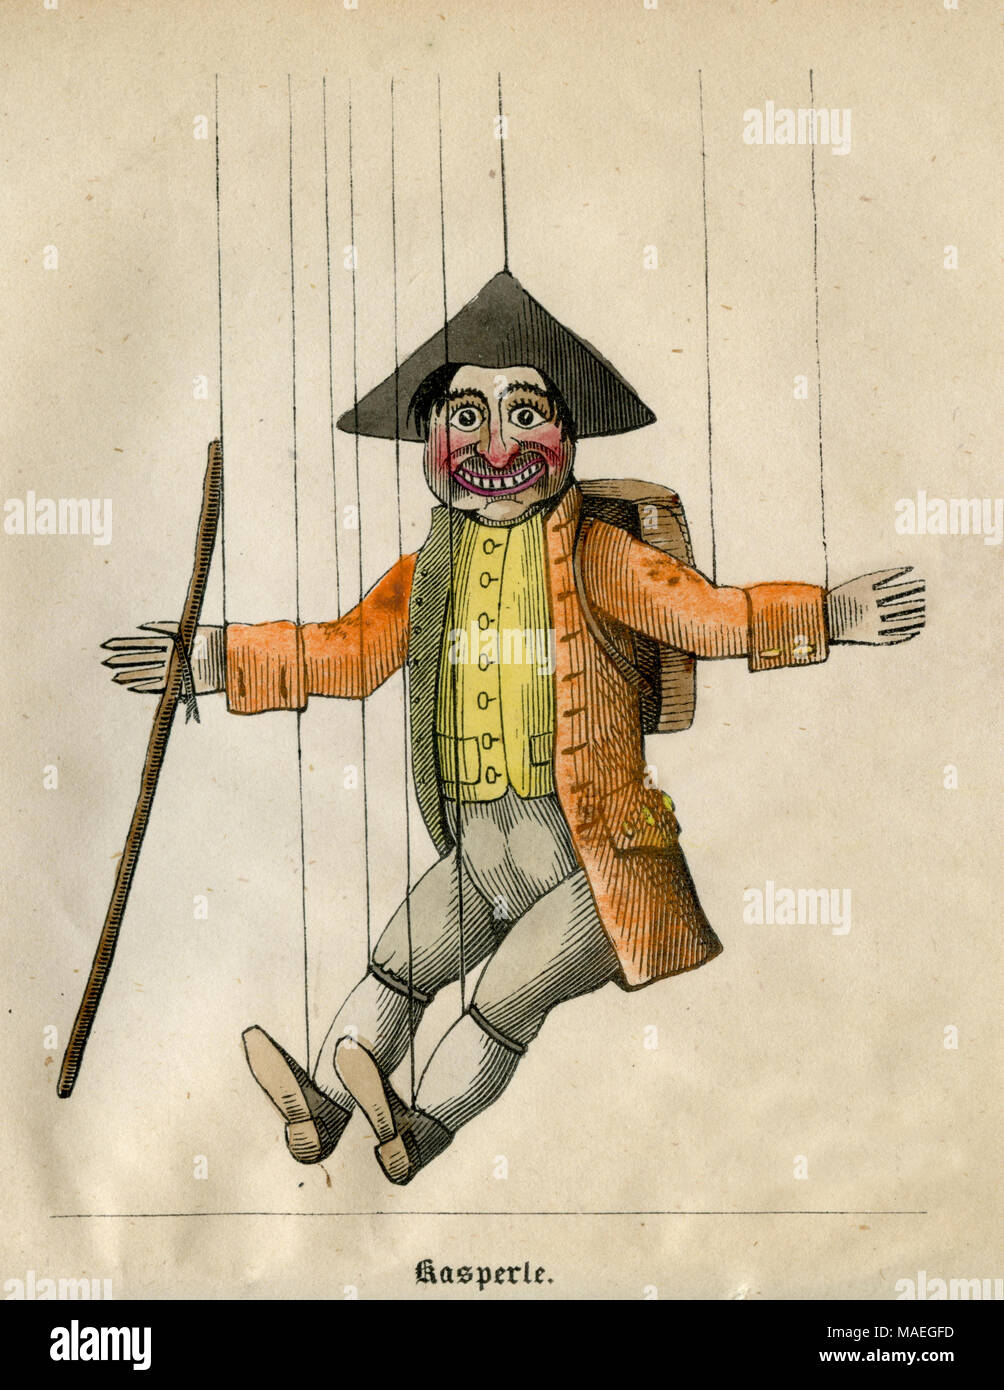 Kaspele puppet figure from Doctor Faust puppet play, 1850, , created , published - Stock Image